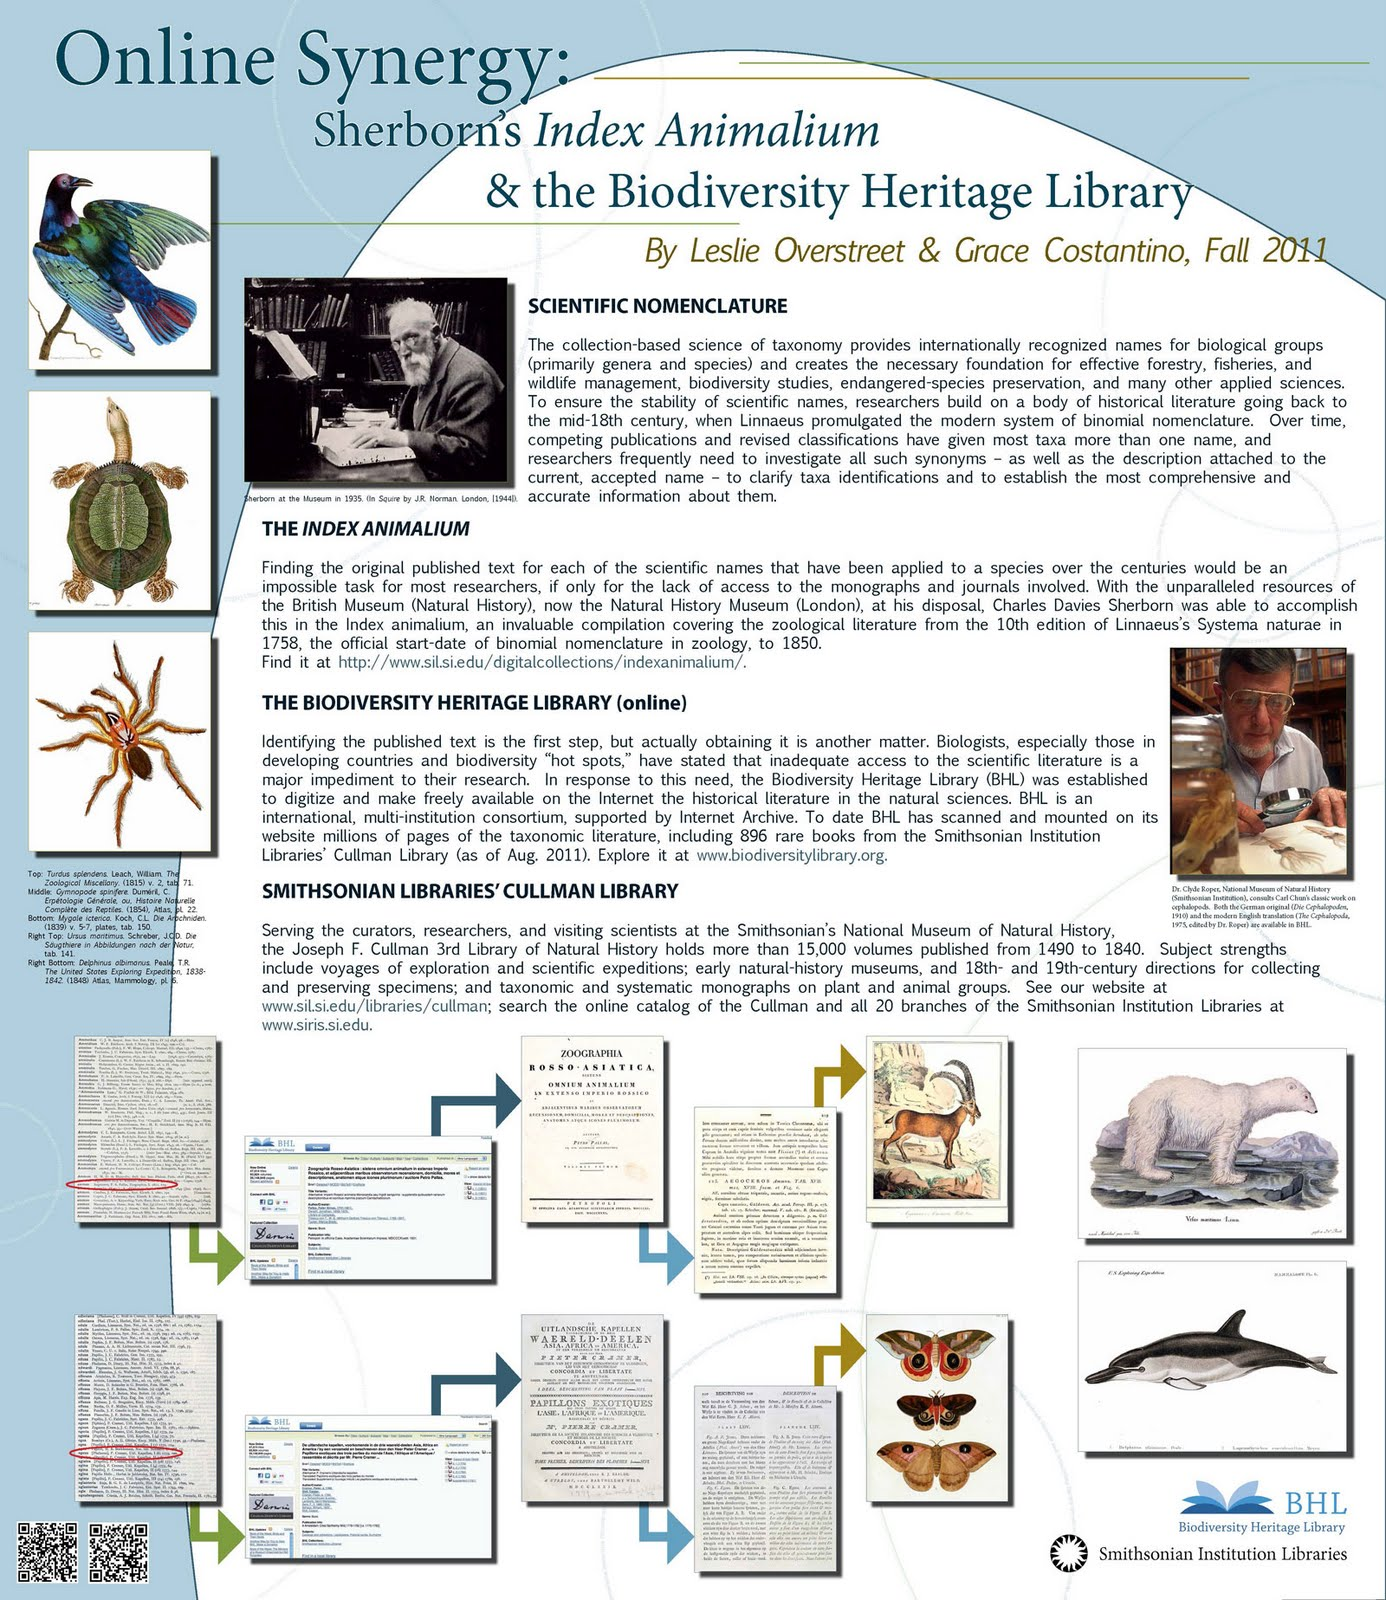 biodiversity heritage library 2011 finally the poster presented by grace costantino and leslie overstreet entitled ldquoonline synergy sherborn s index ani um and the biodiversity heritage